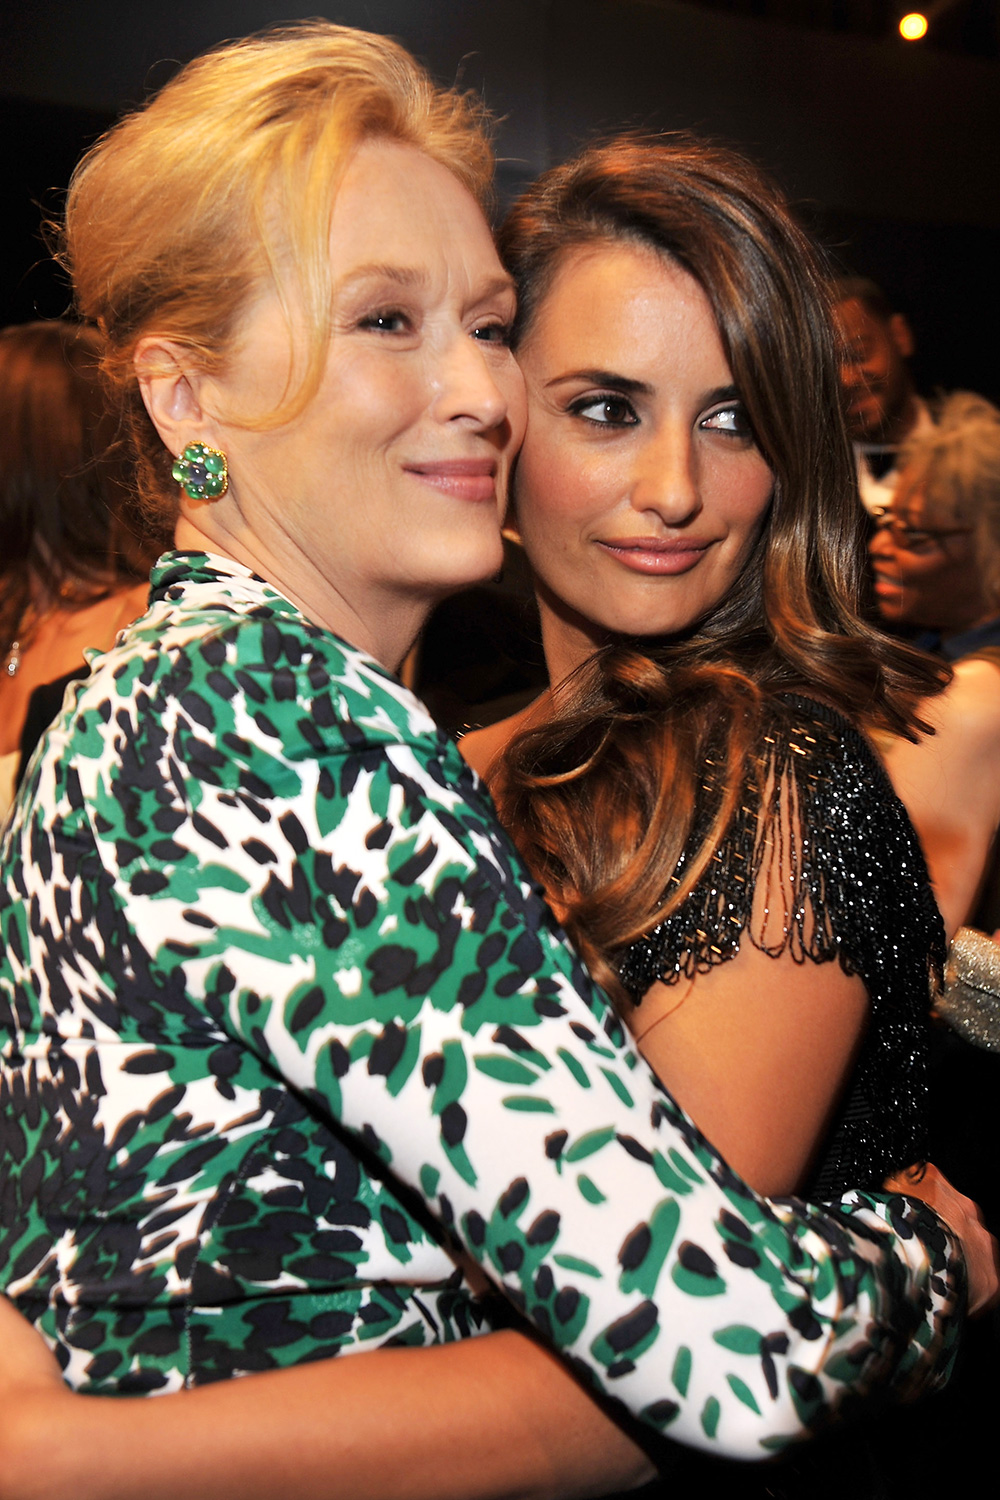 Meryl Streep and Penelope Cruz attend the TNT/TBS broadcast of the 16th Annual Screen Actors Guild Awards at the Shrine Auditorium on January 23, 2010 in Los Angeles, California